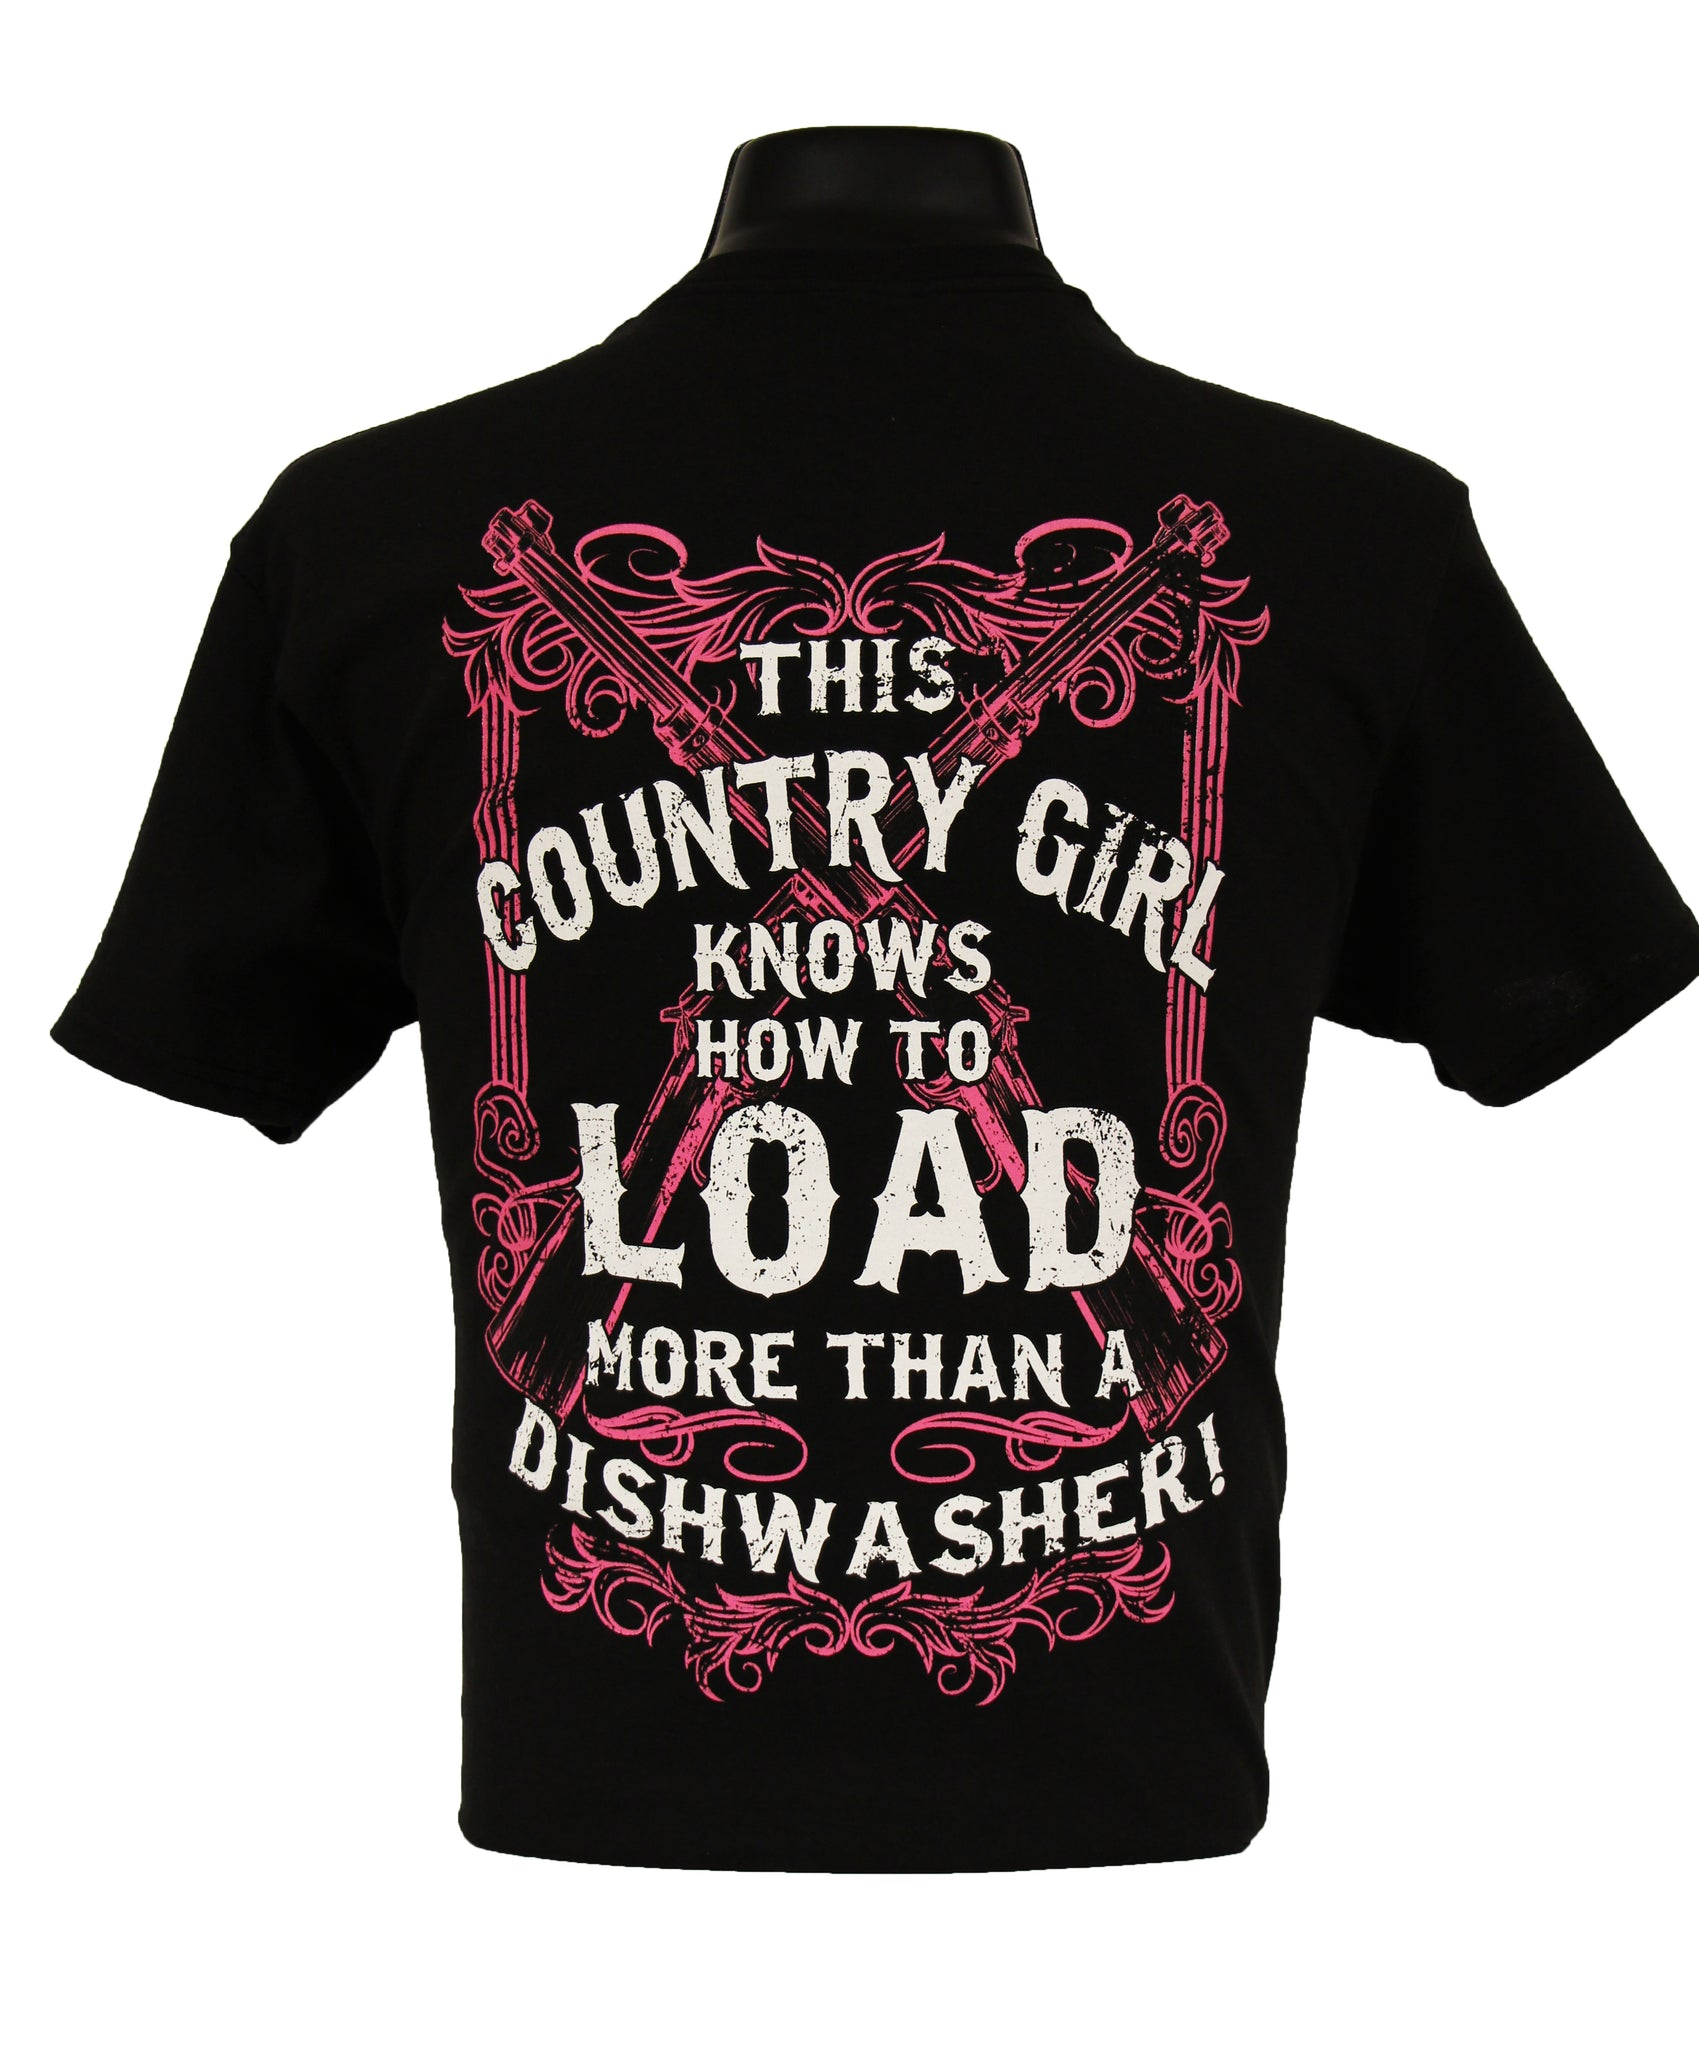 7056 - Southern Addiction More Than a Dishwasher T Shirt